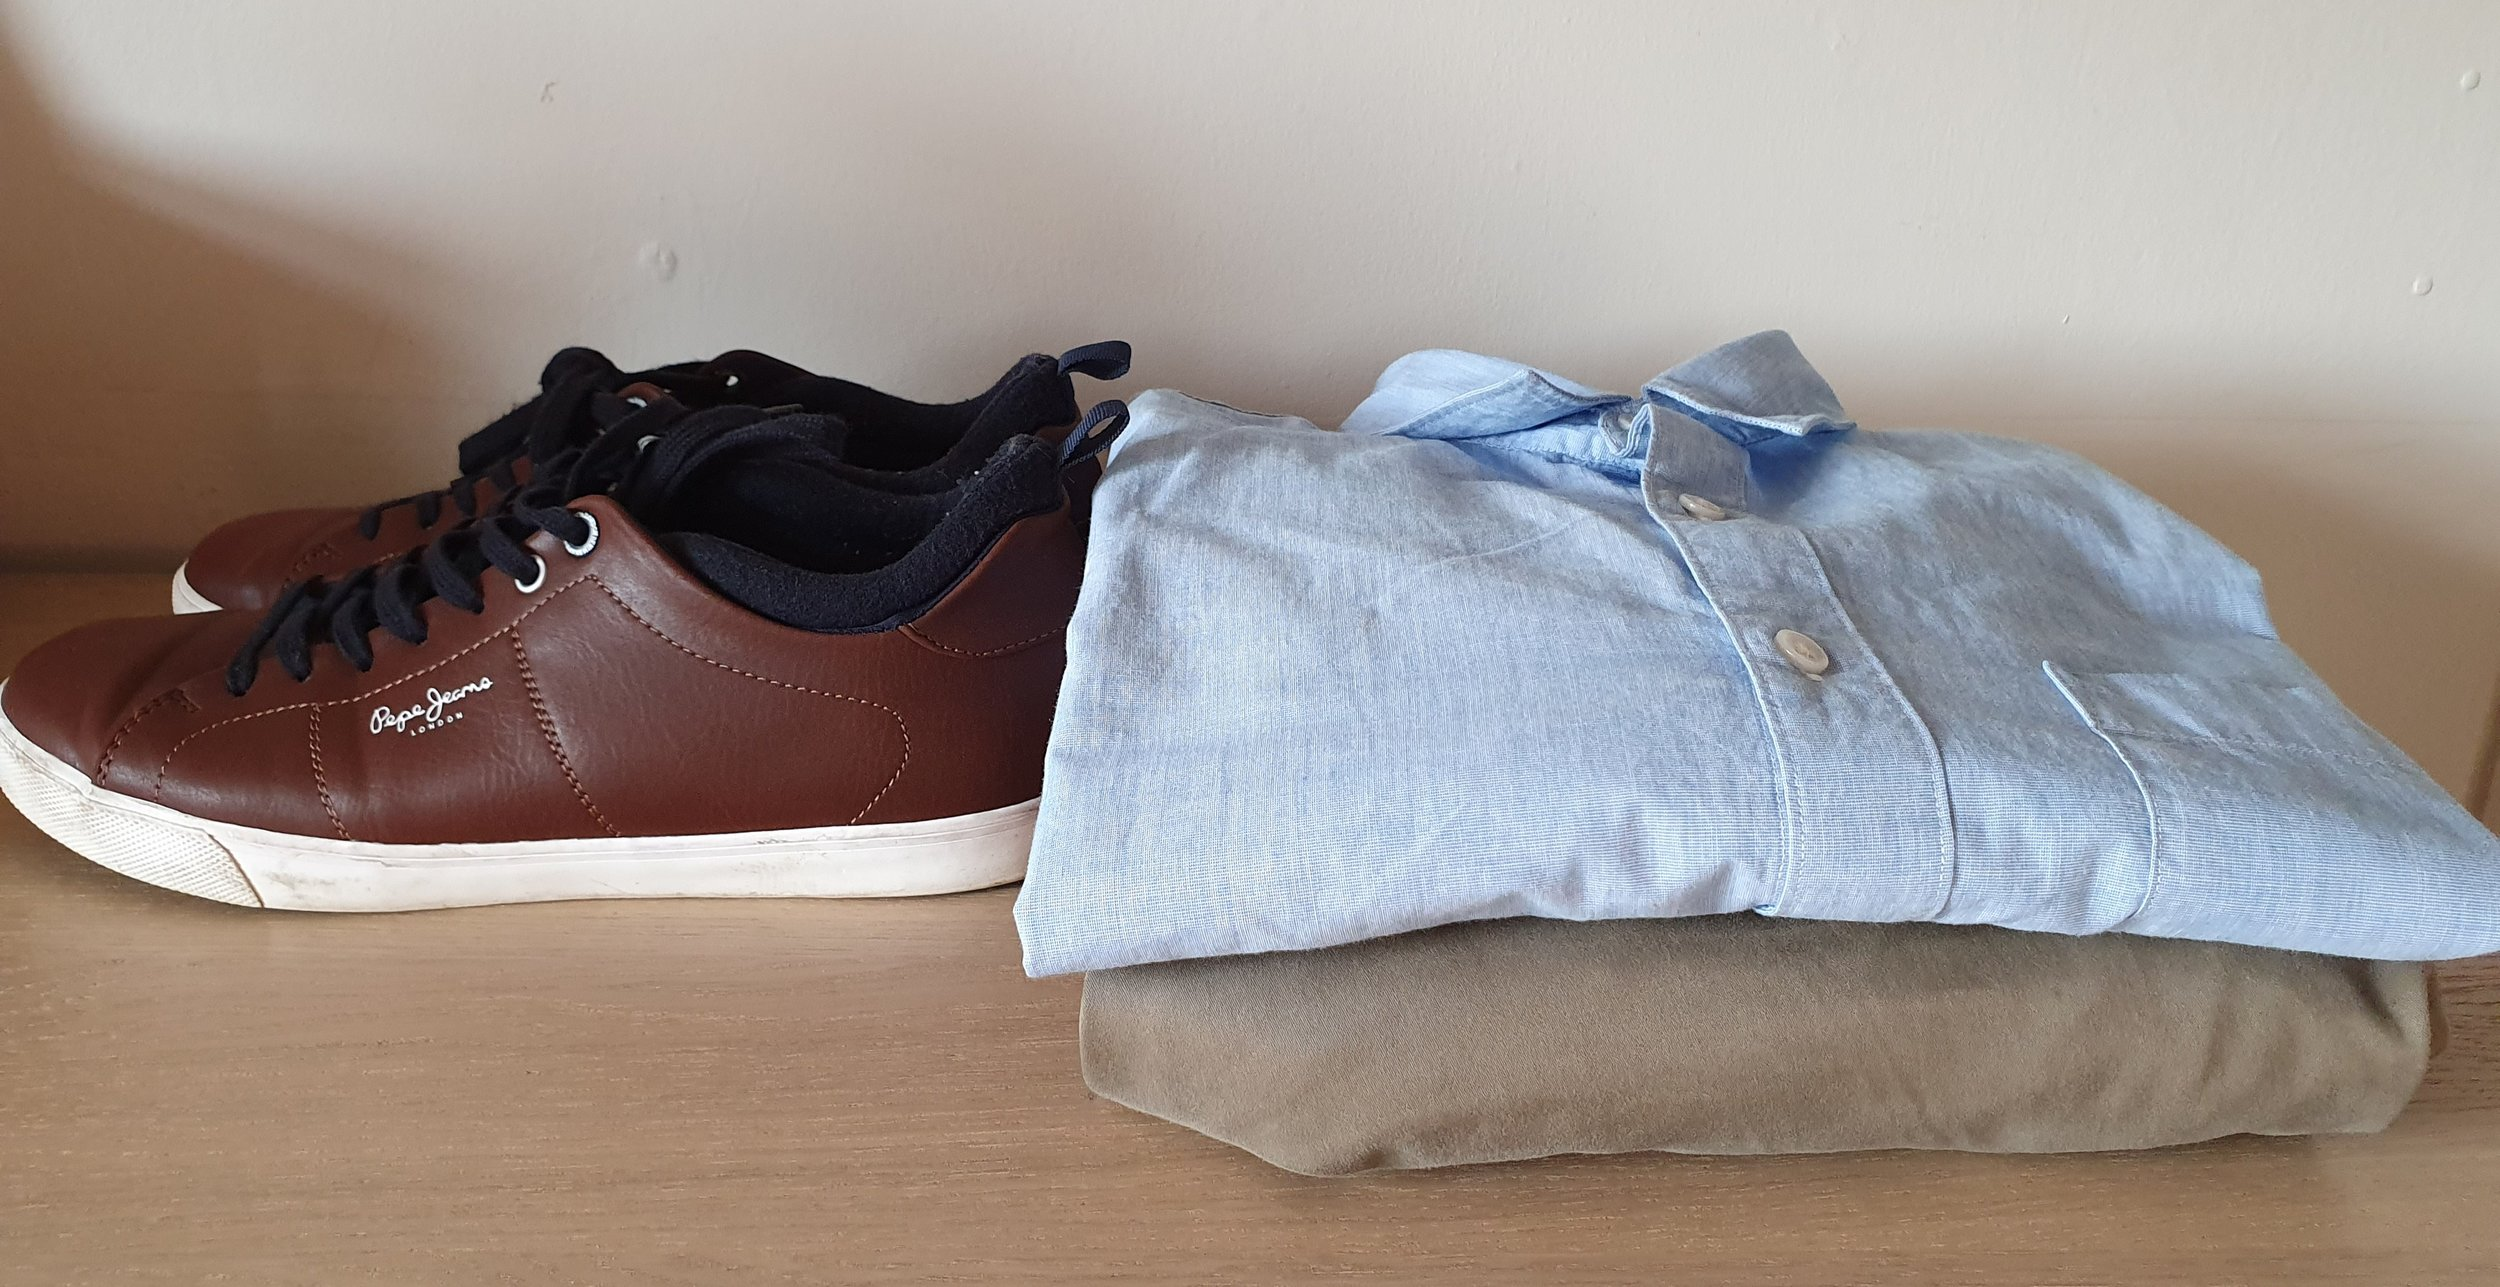 Pepe Jeans Trainers, Jack & Jones Chinos, Muji Shirts